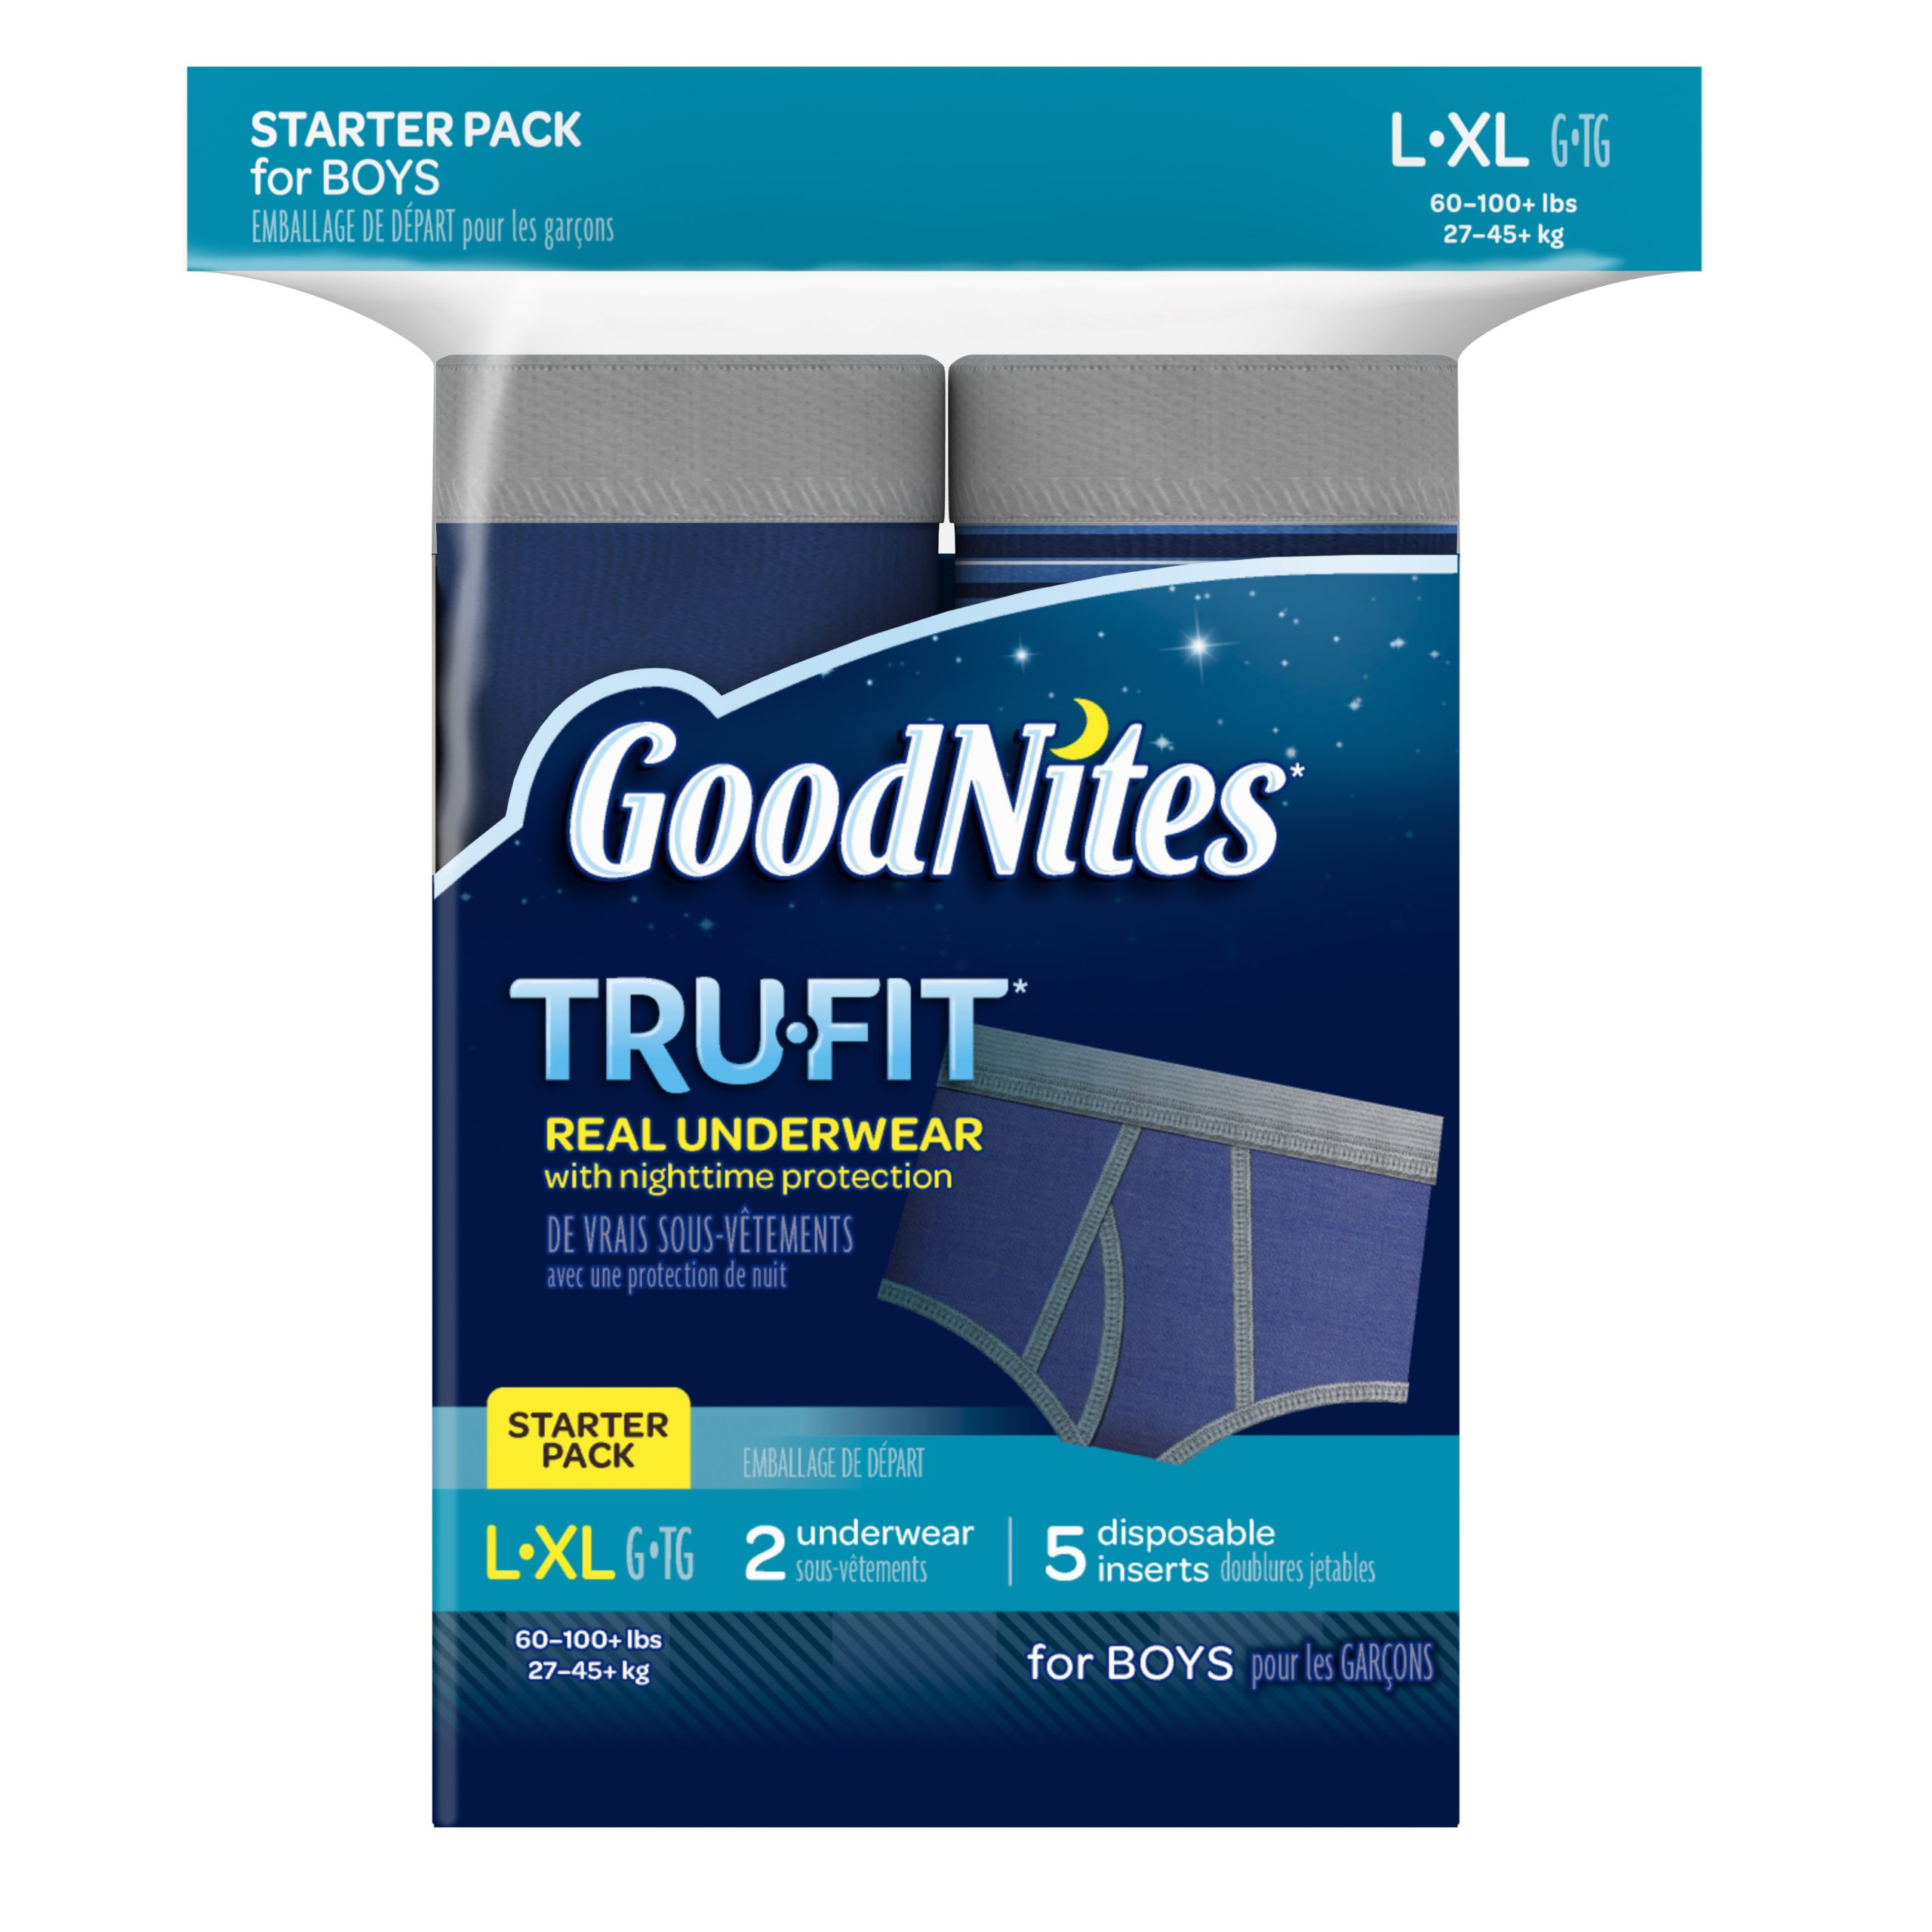 GoodNites Tru-Fit Real Underwear with Nighttime Protection Starter Pack for Boys, Large and Extra Large, 7 Count